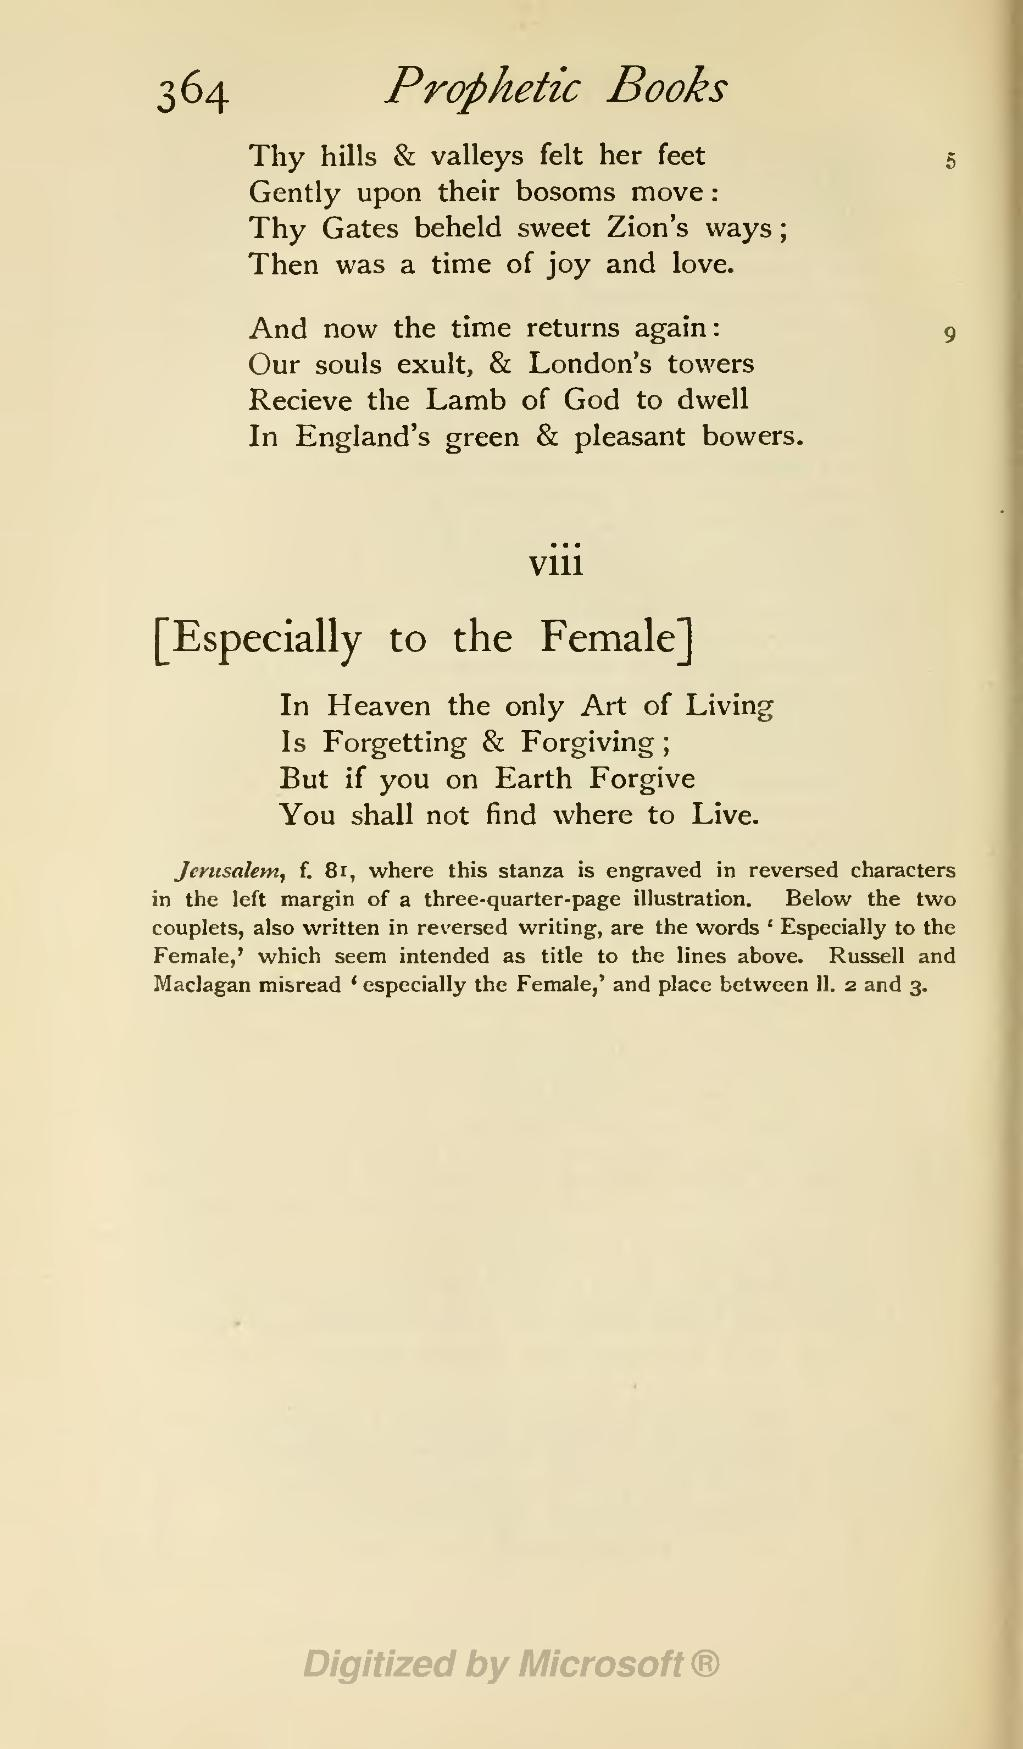 Page:The poetical works of William Blake